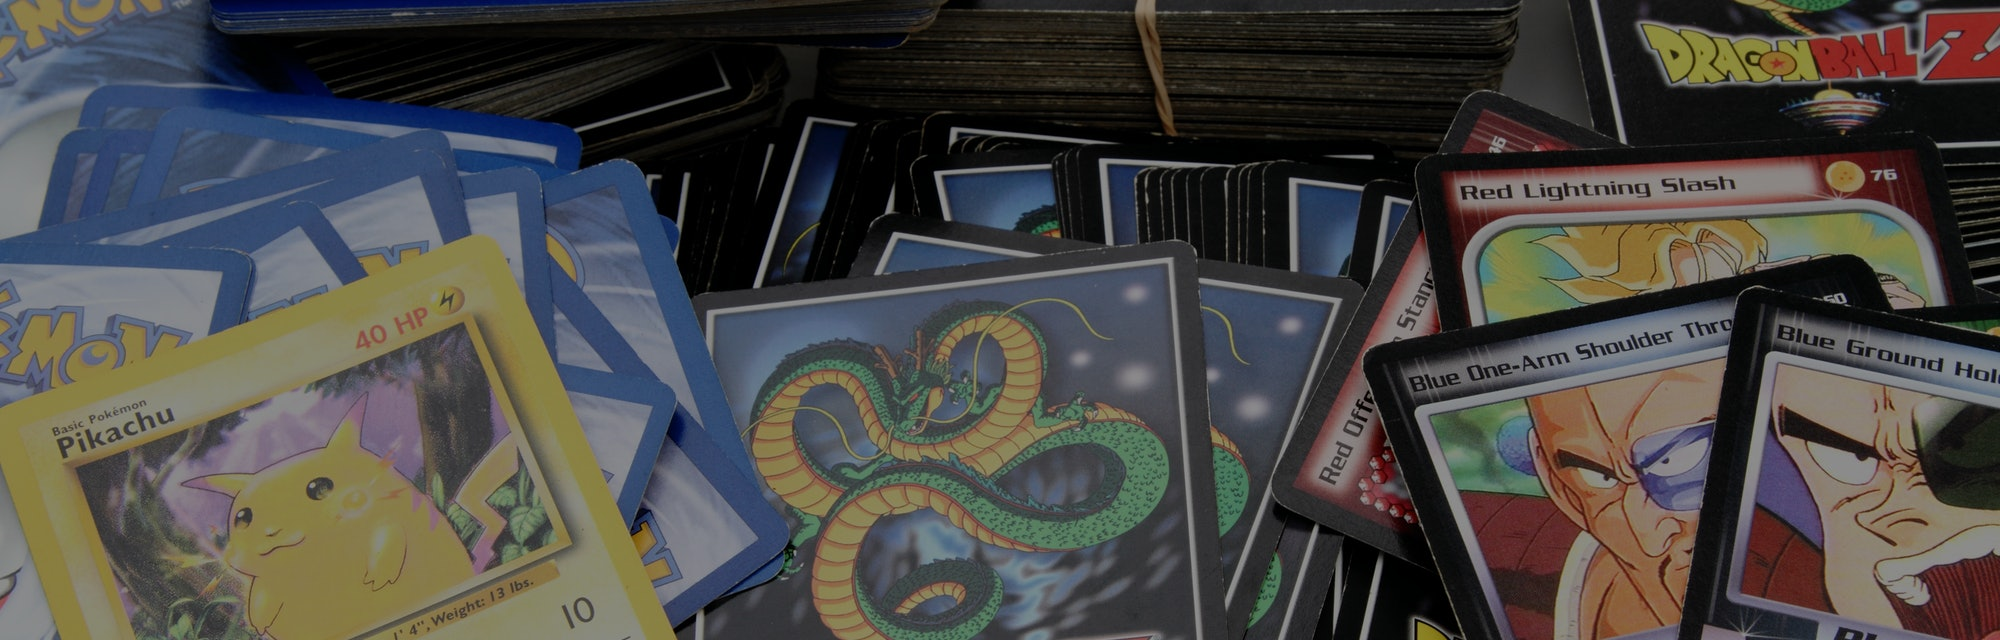 West Palm Beach, USA - April 28, 2015: Product shot of an assortment of Dragon Ball Z and Pokemon trading game cards. Pokemon trading cards are produced by Nintendo.The Dragon Ball Z cards are based on the Japanese Dragon Ball animation series created by Akira Toriyama. Dragon Ball Z cards are produced by Bird Studio/Shueisha and licensed by Funimation.